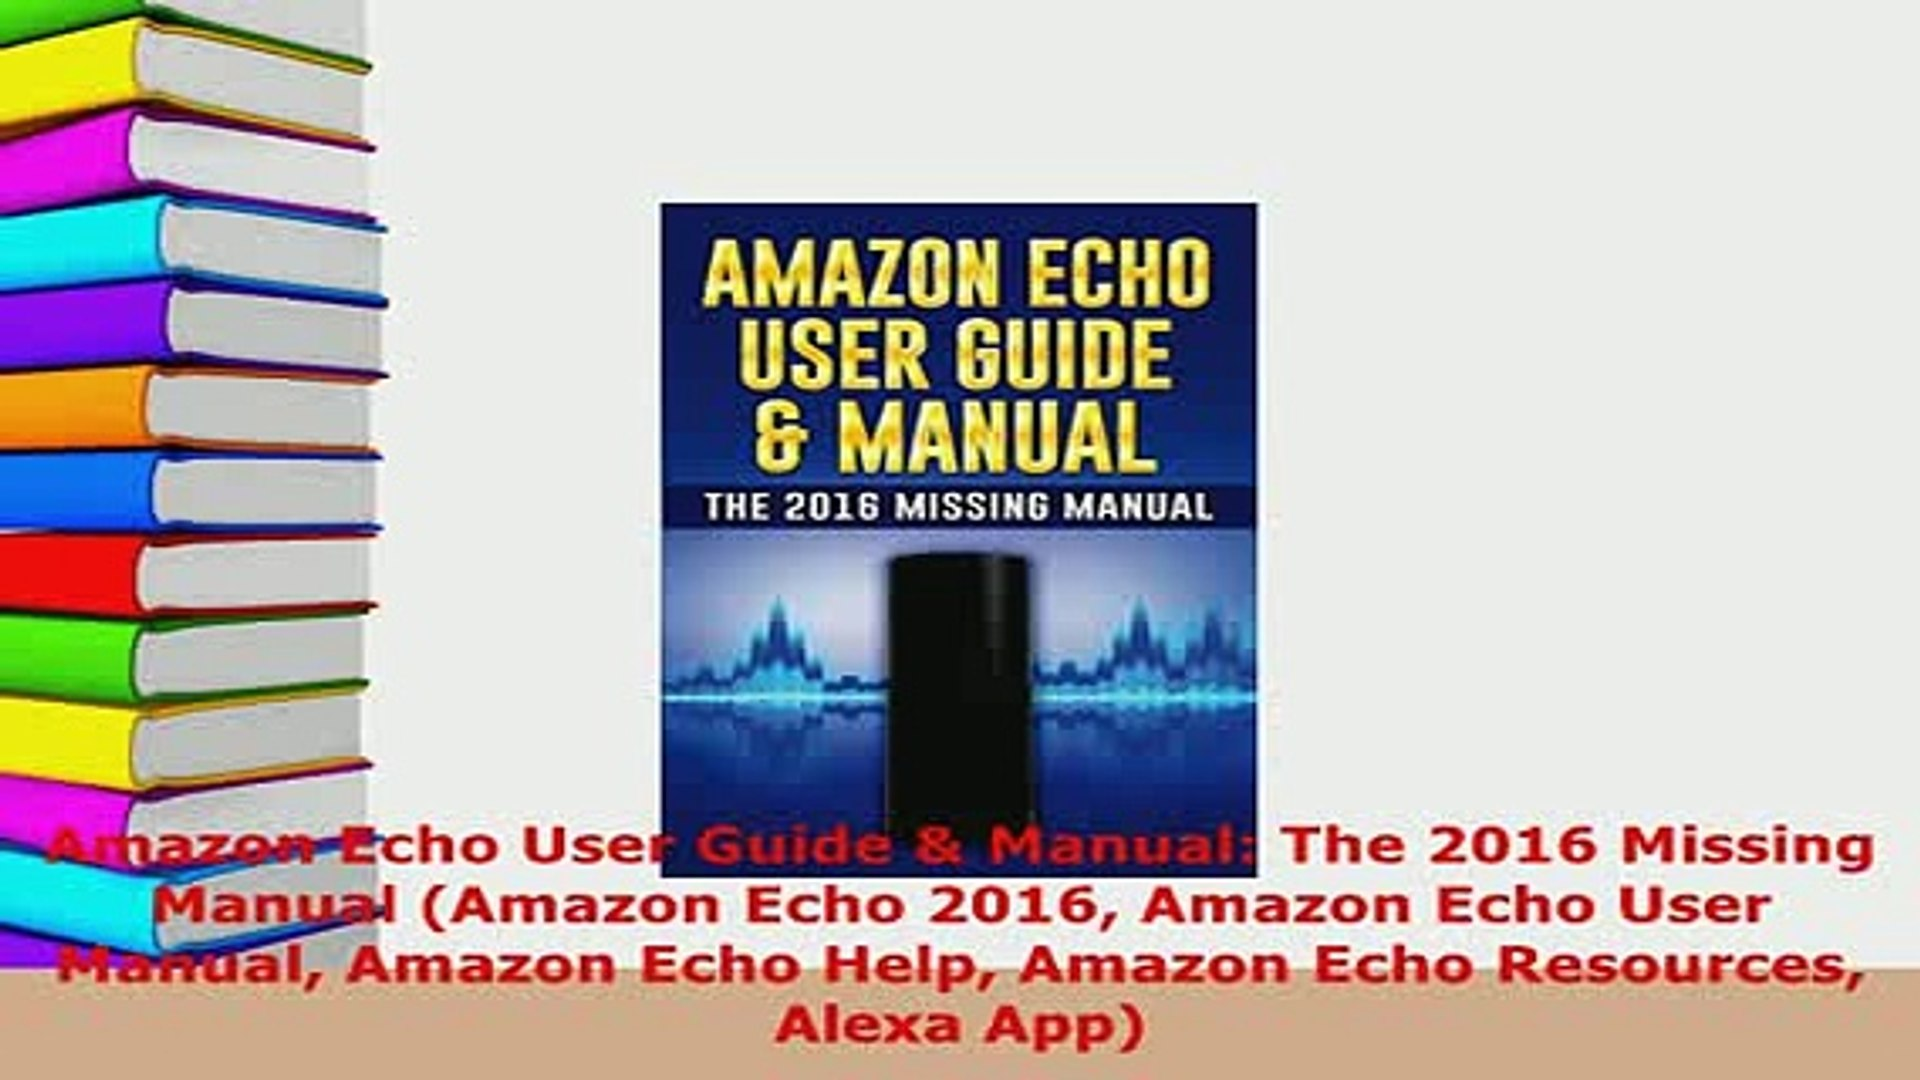 PDF  Amazon Echo User Guide  Manual The 2016 Missing Manual Amazon Echo 2016 Amazon Echo  EBook